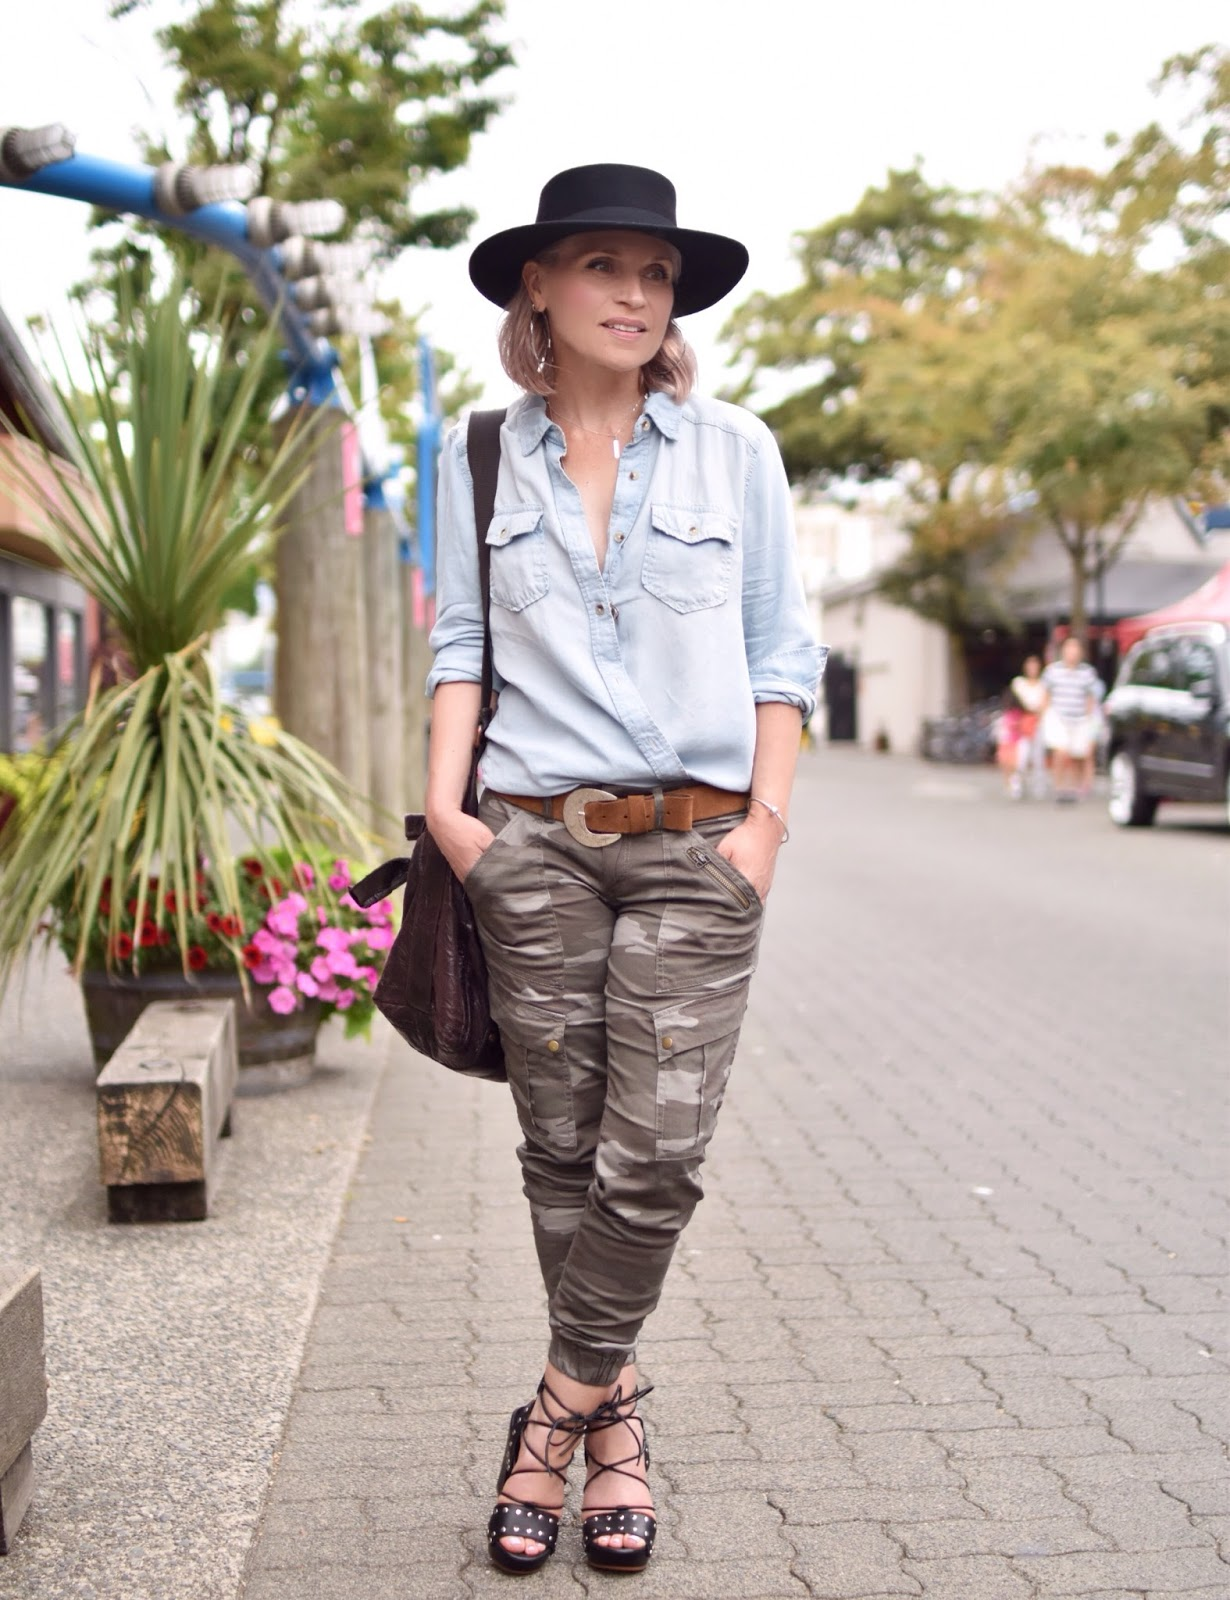 Monika Faulkner personal style inspiration - camo pants with a chambray shirt, lace-up sandals, and a flat-top fedora